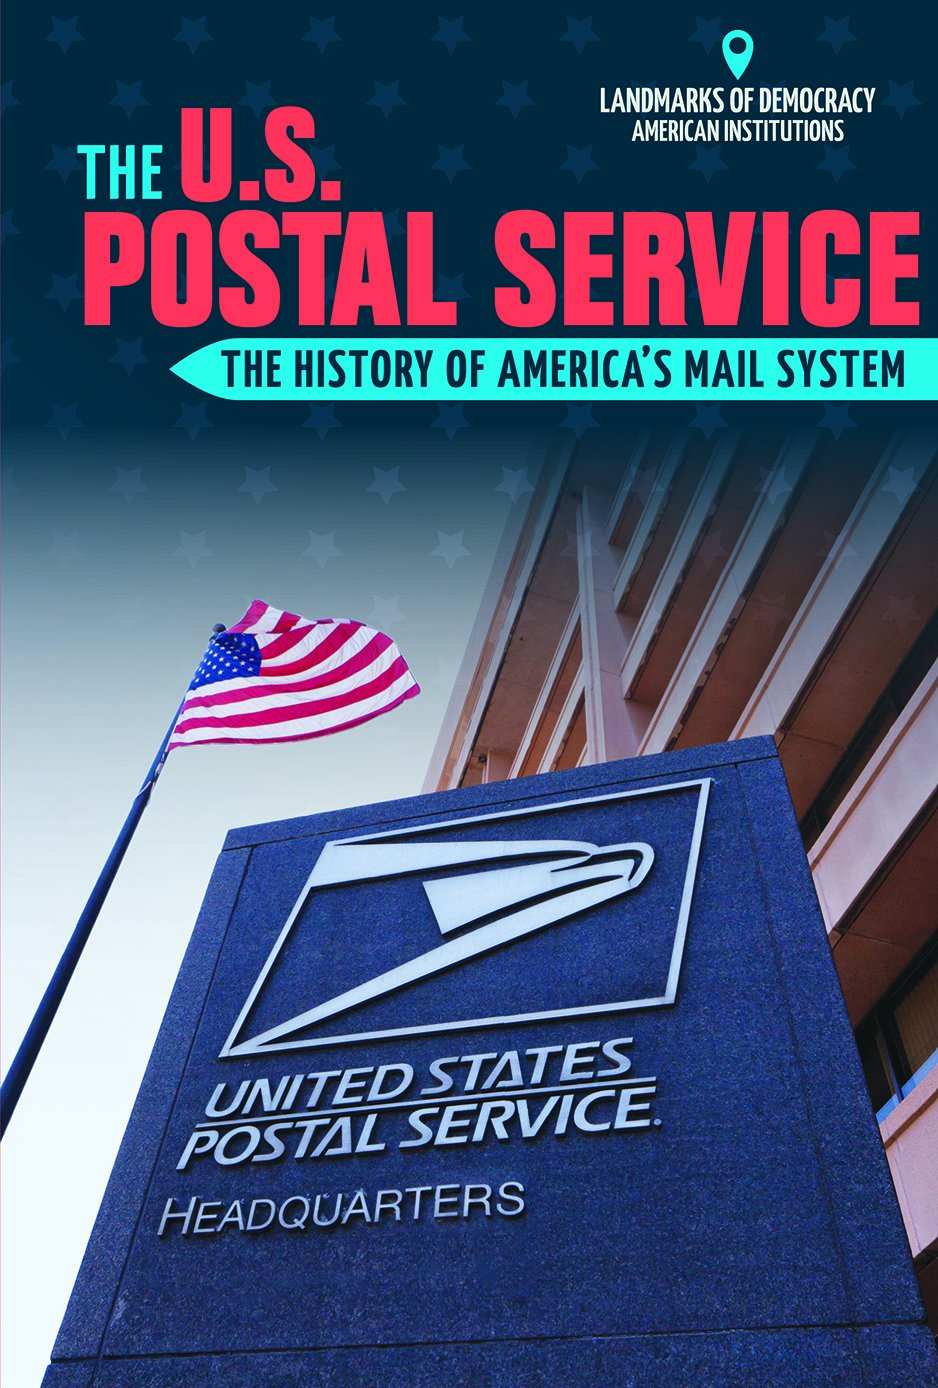 The U S Postal Service The History Of America S Mail System Landmarks Of Democracy American Institutions Uphall Margaret 9781508161059 Amazon Com Books